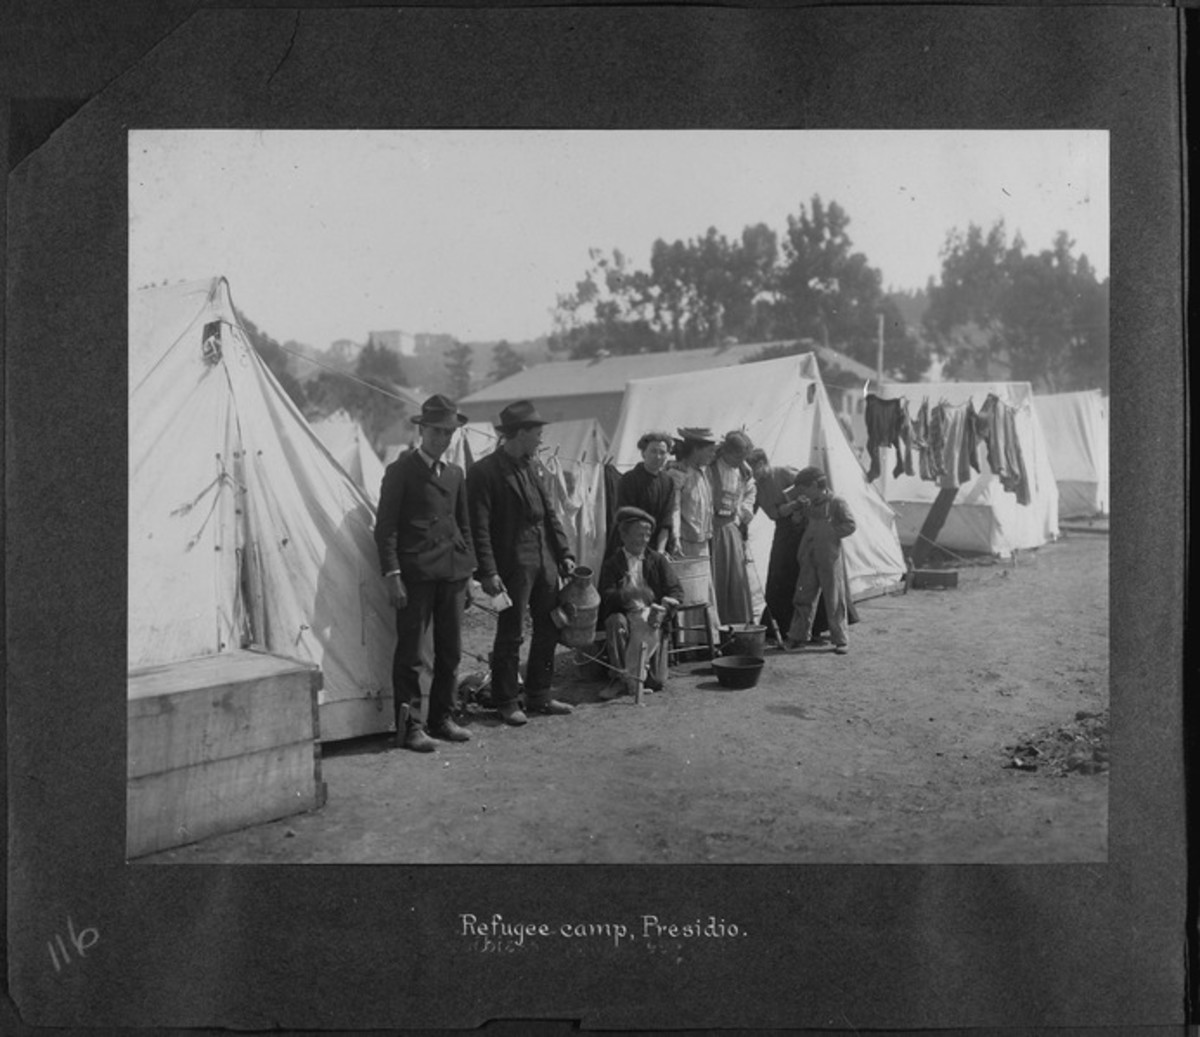 San Francisco Earthquake of 1906, Refugee camp, Presidio